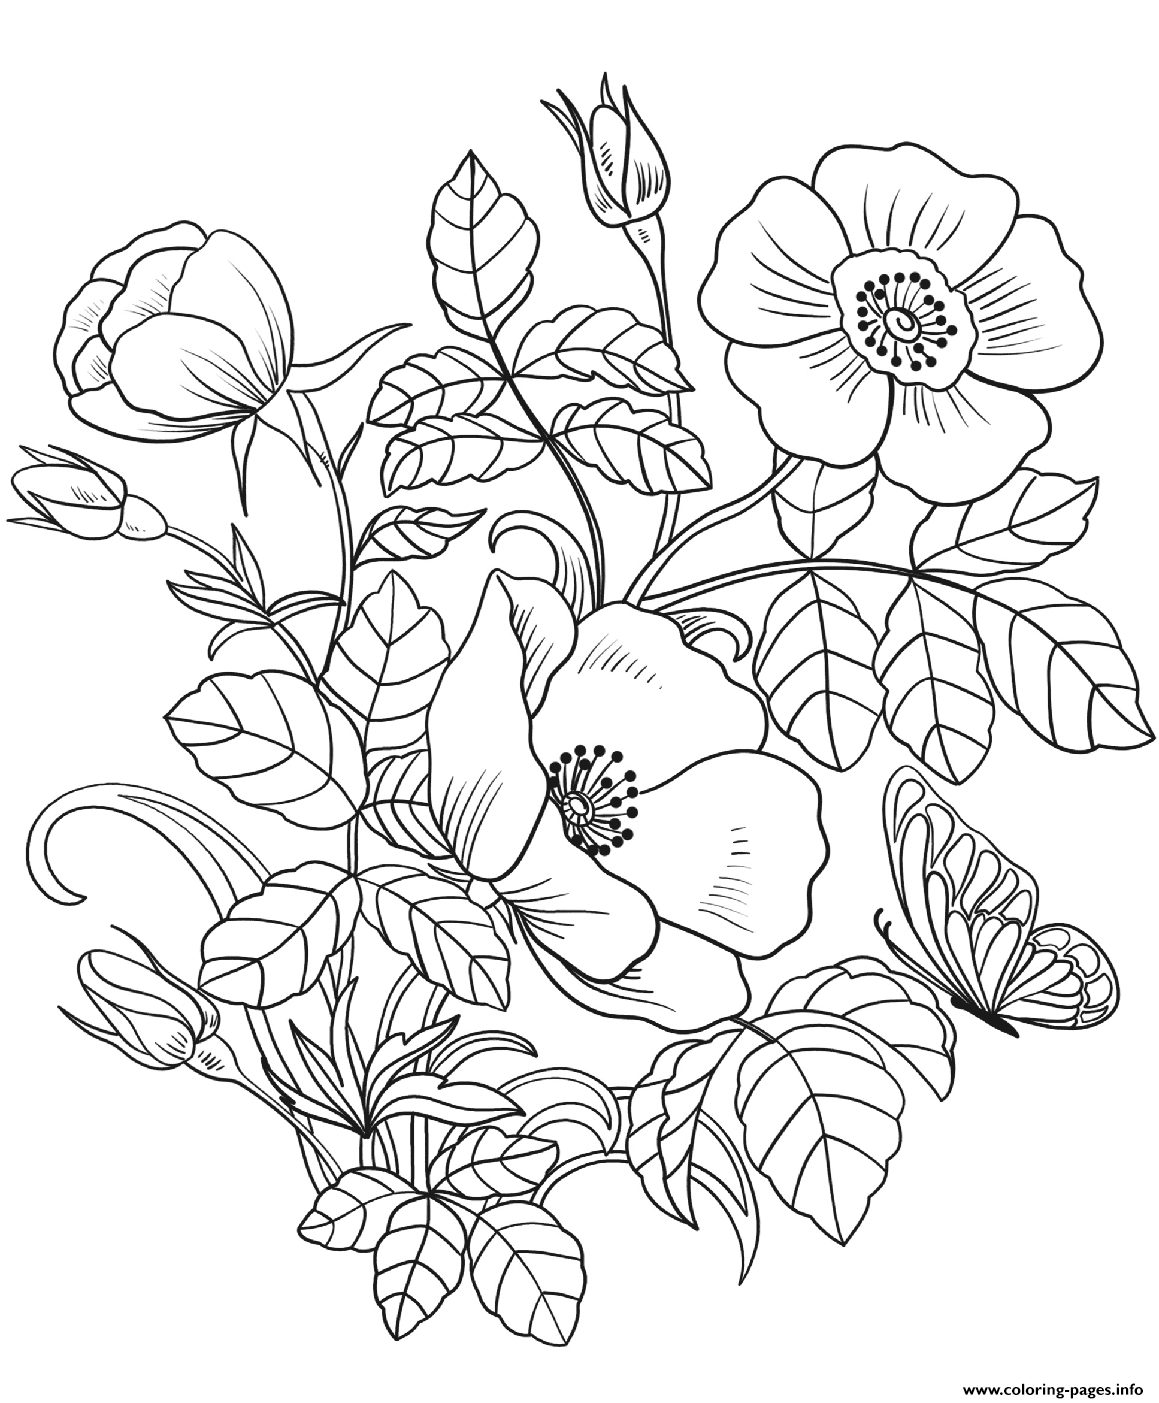 coloring sheets of flowers 10 flower coloring sheets for girls and boys all esl coloring flowers of sheets